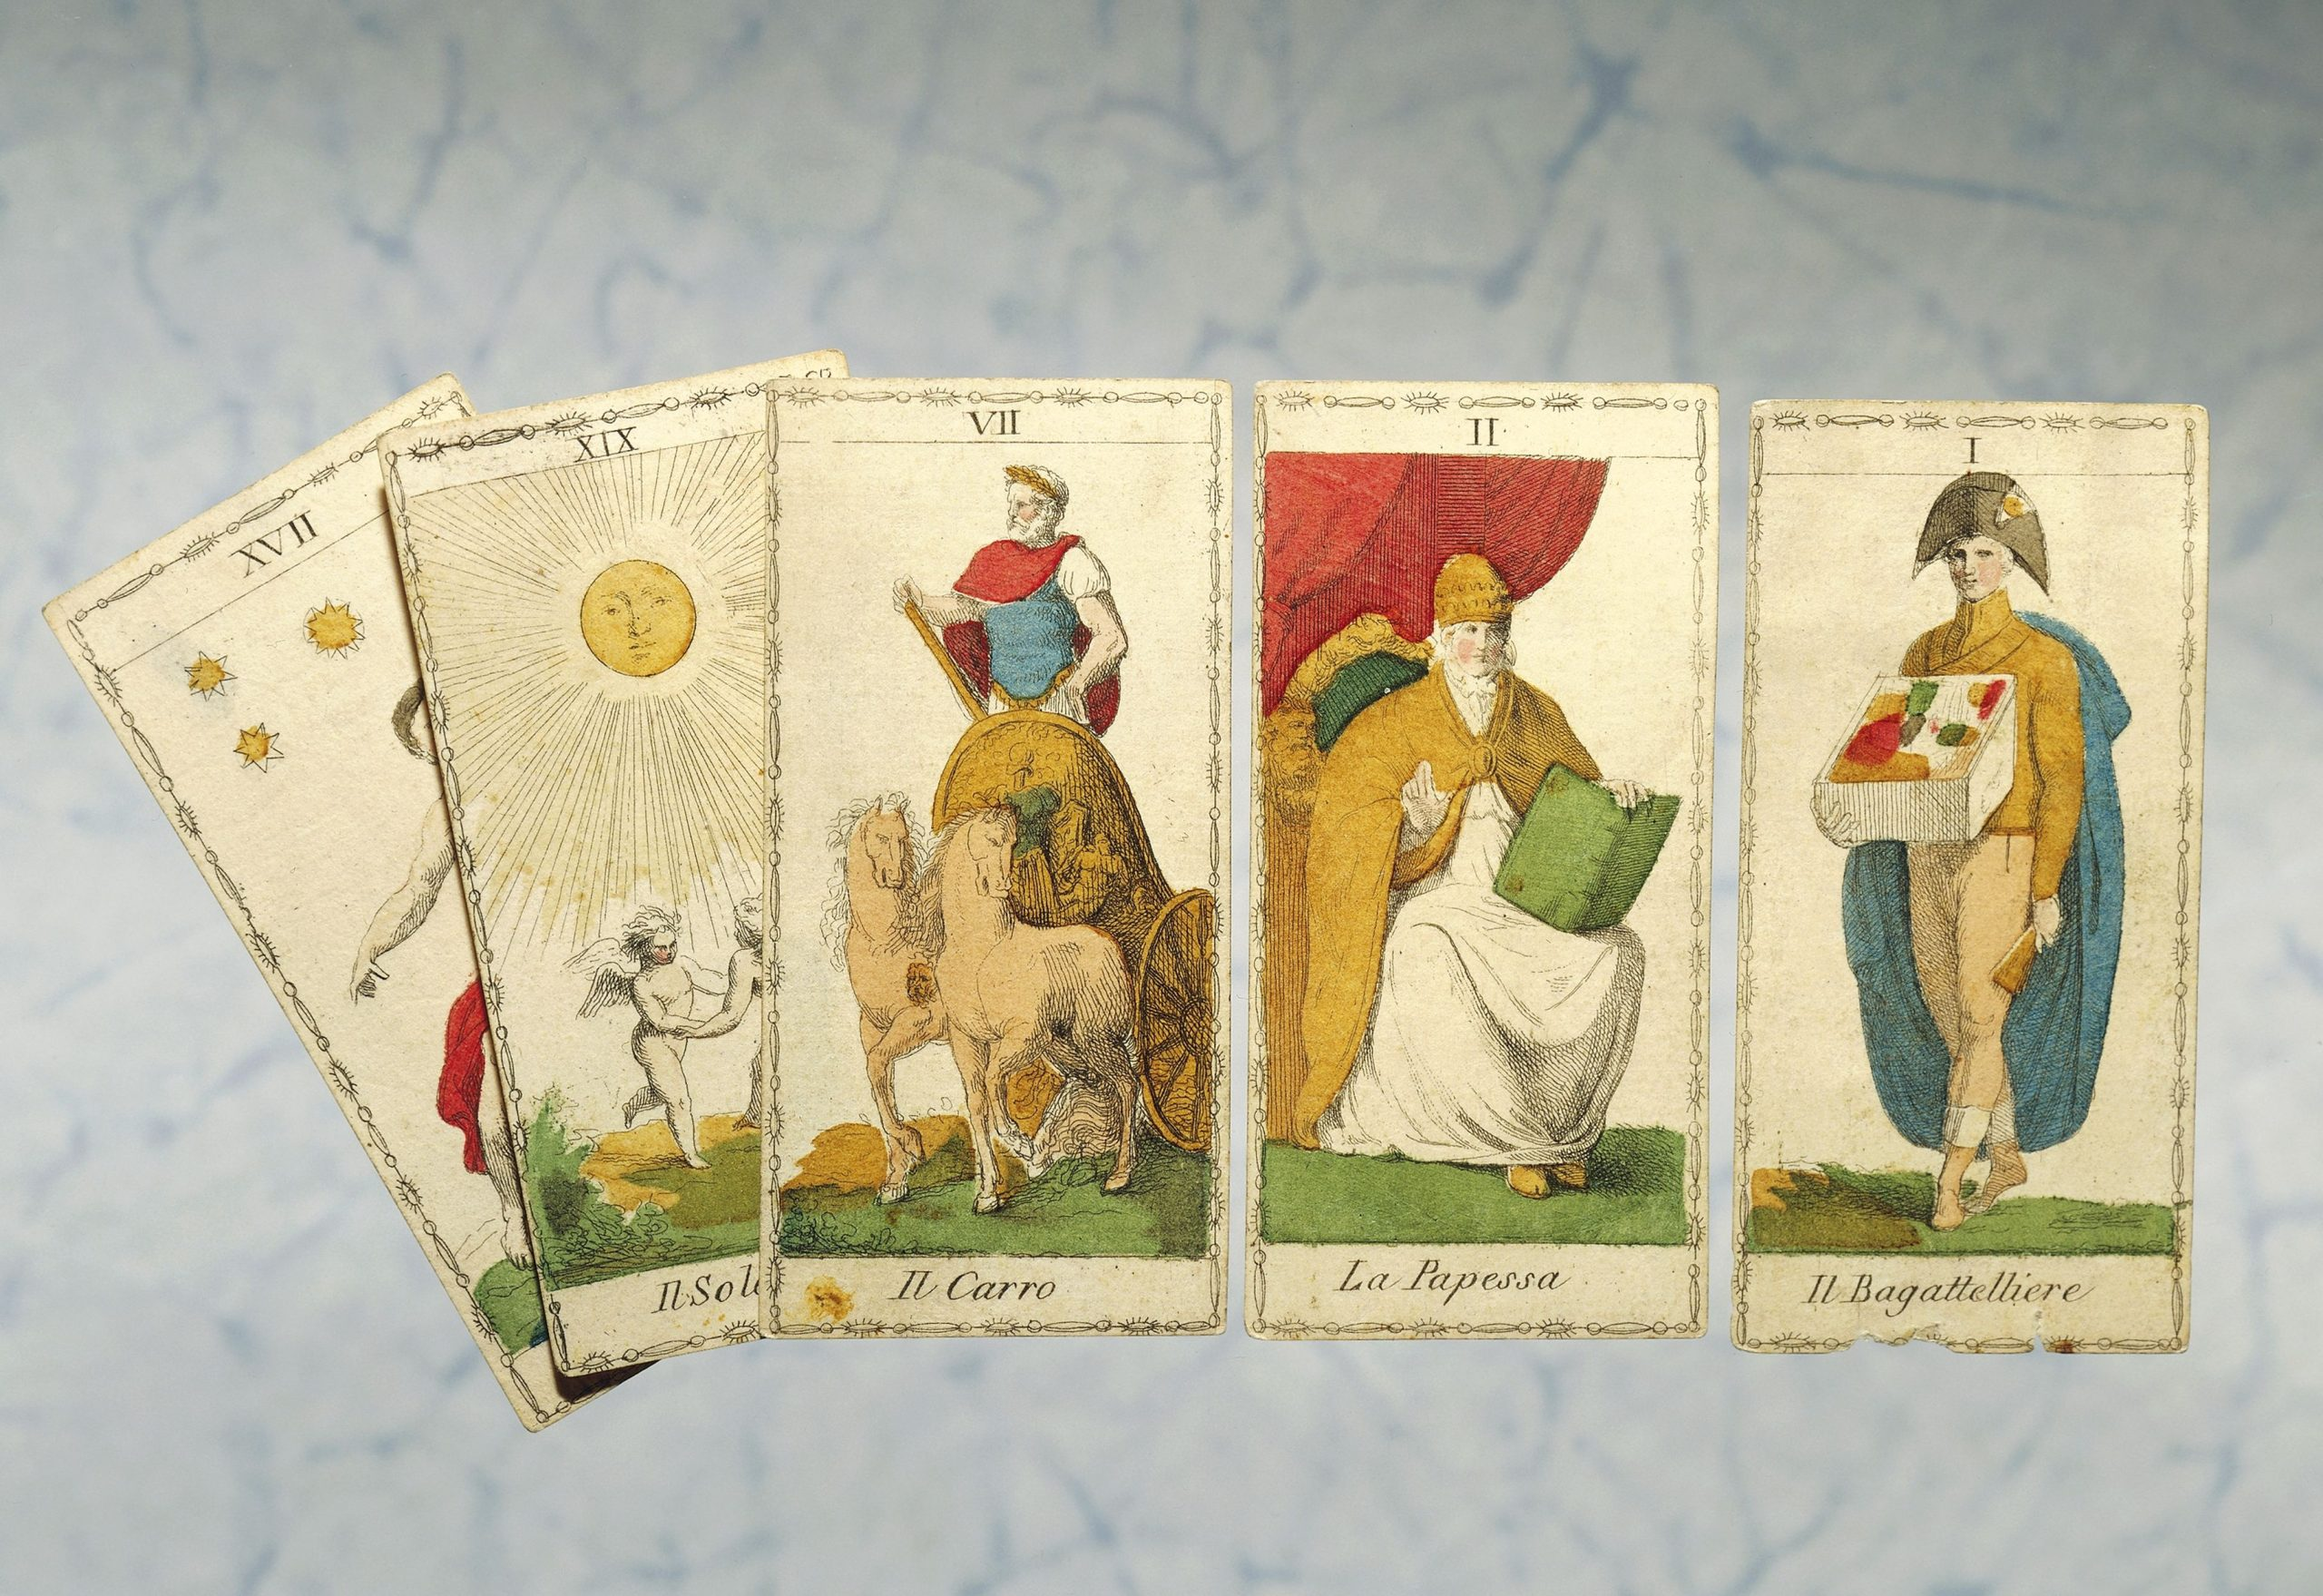 Ways Twitter Ruined My Tarot Card Analysis Without Me Observing